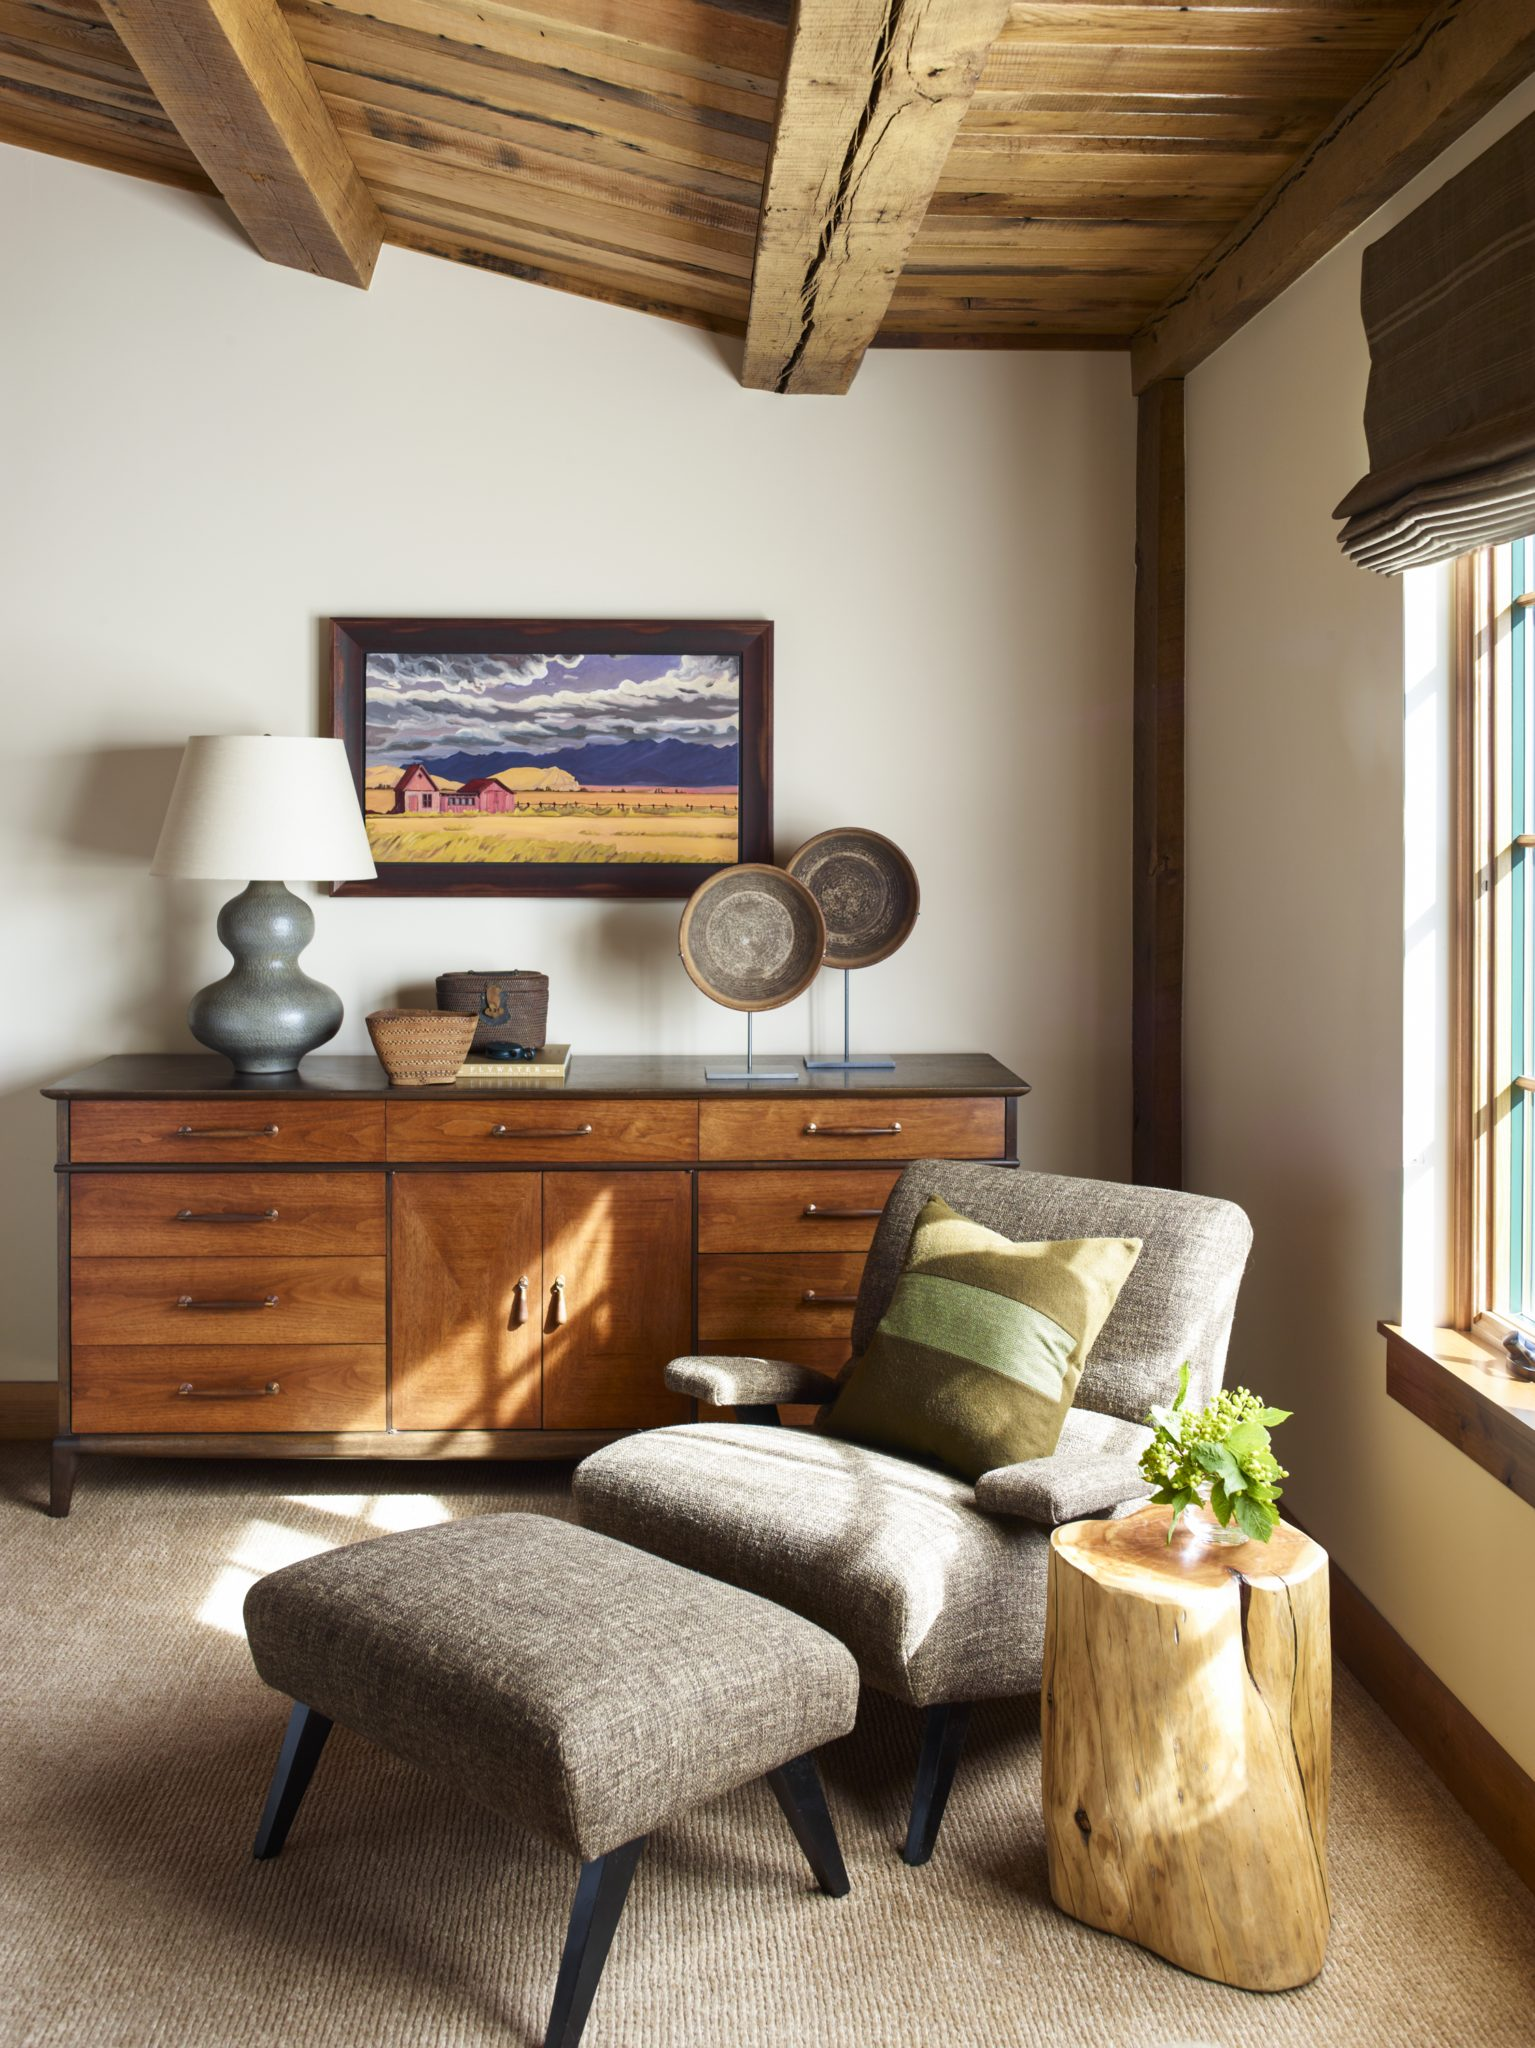 Rustic Montana Retreat - Bedroom by Kylee Shintaffer